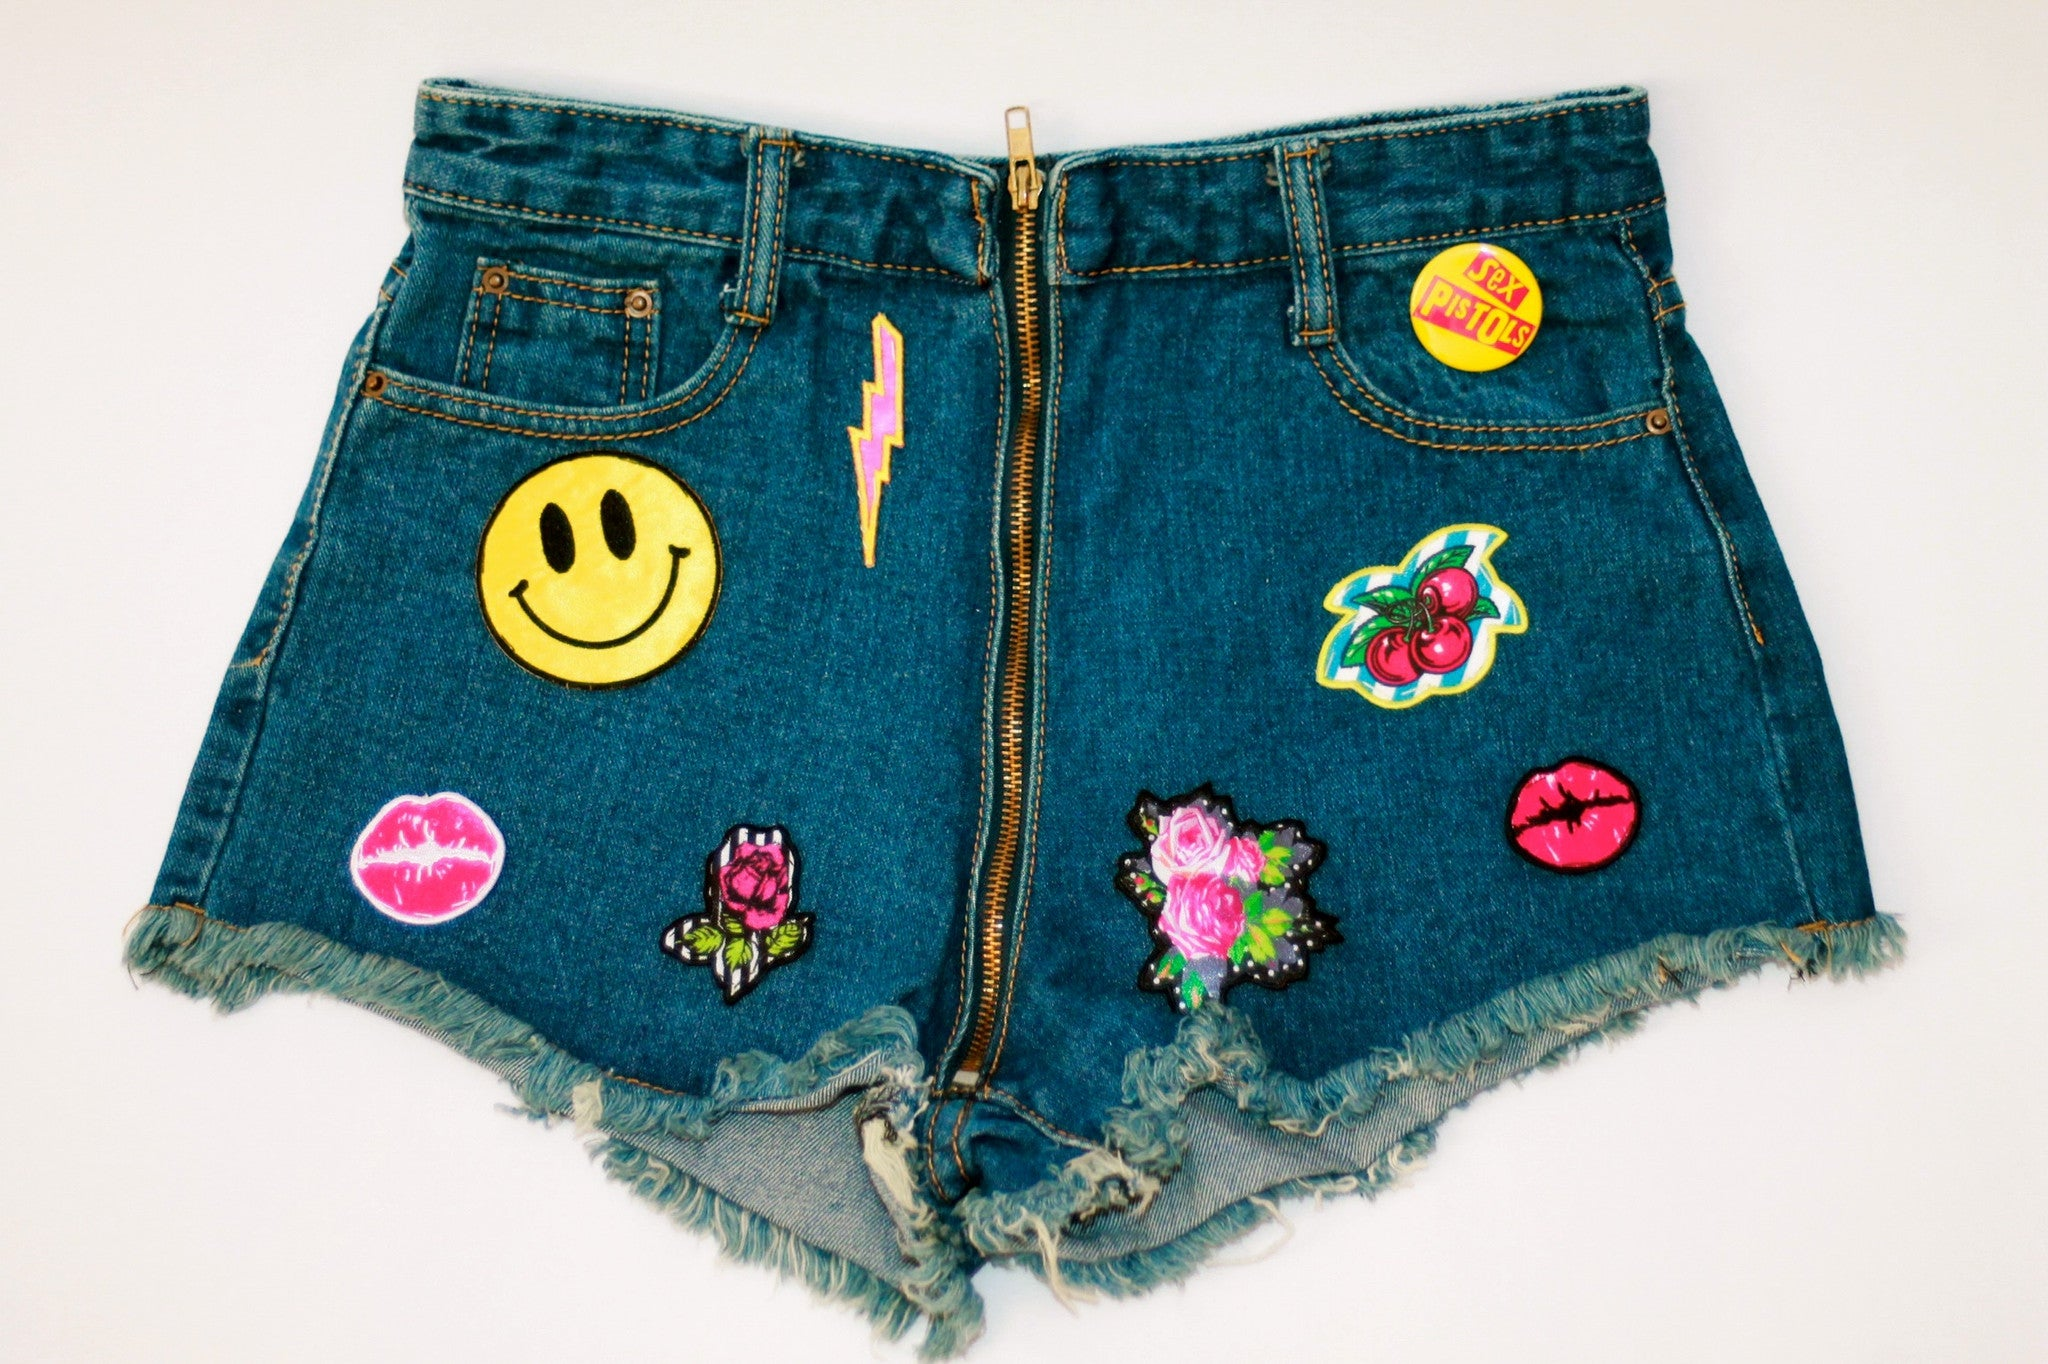 Custom 7ven x Betsey Johnson Patched Shorts #2